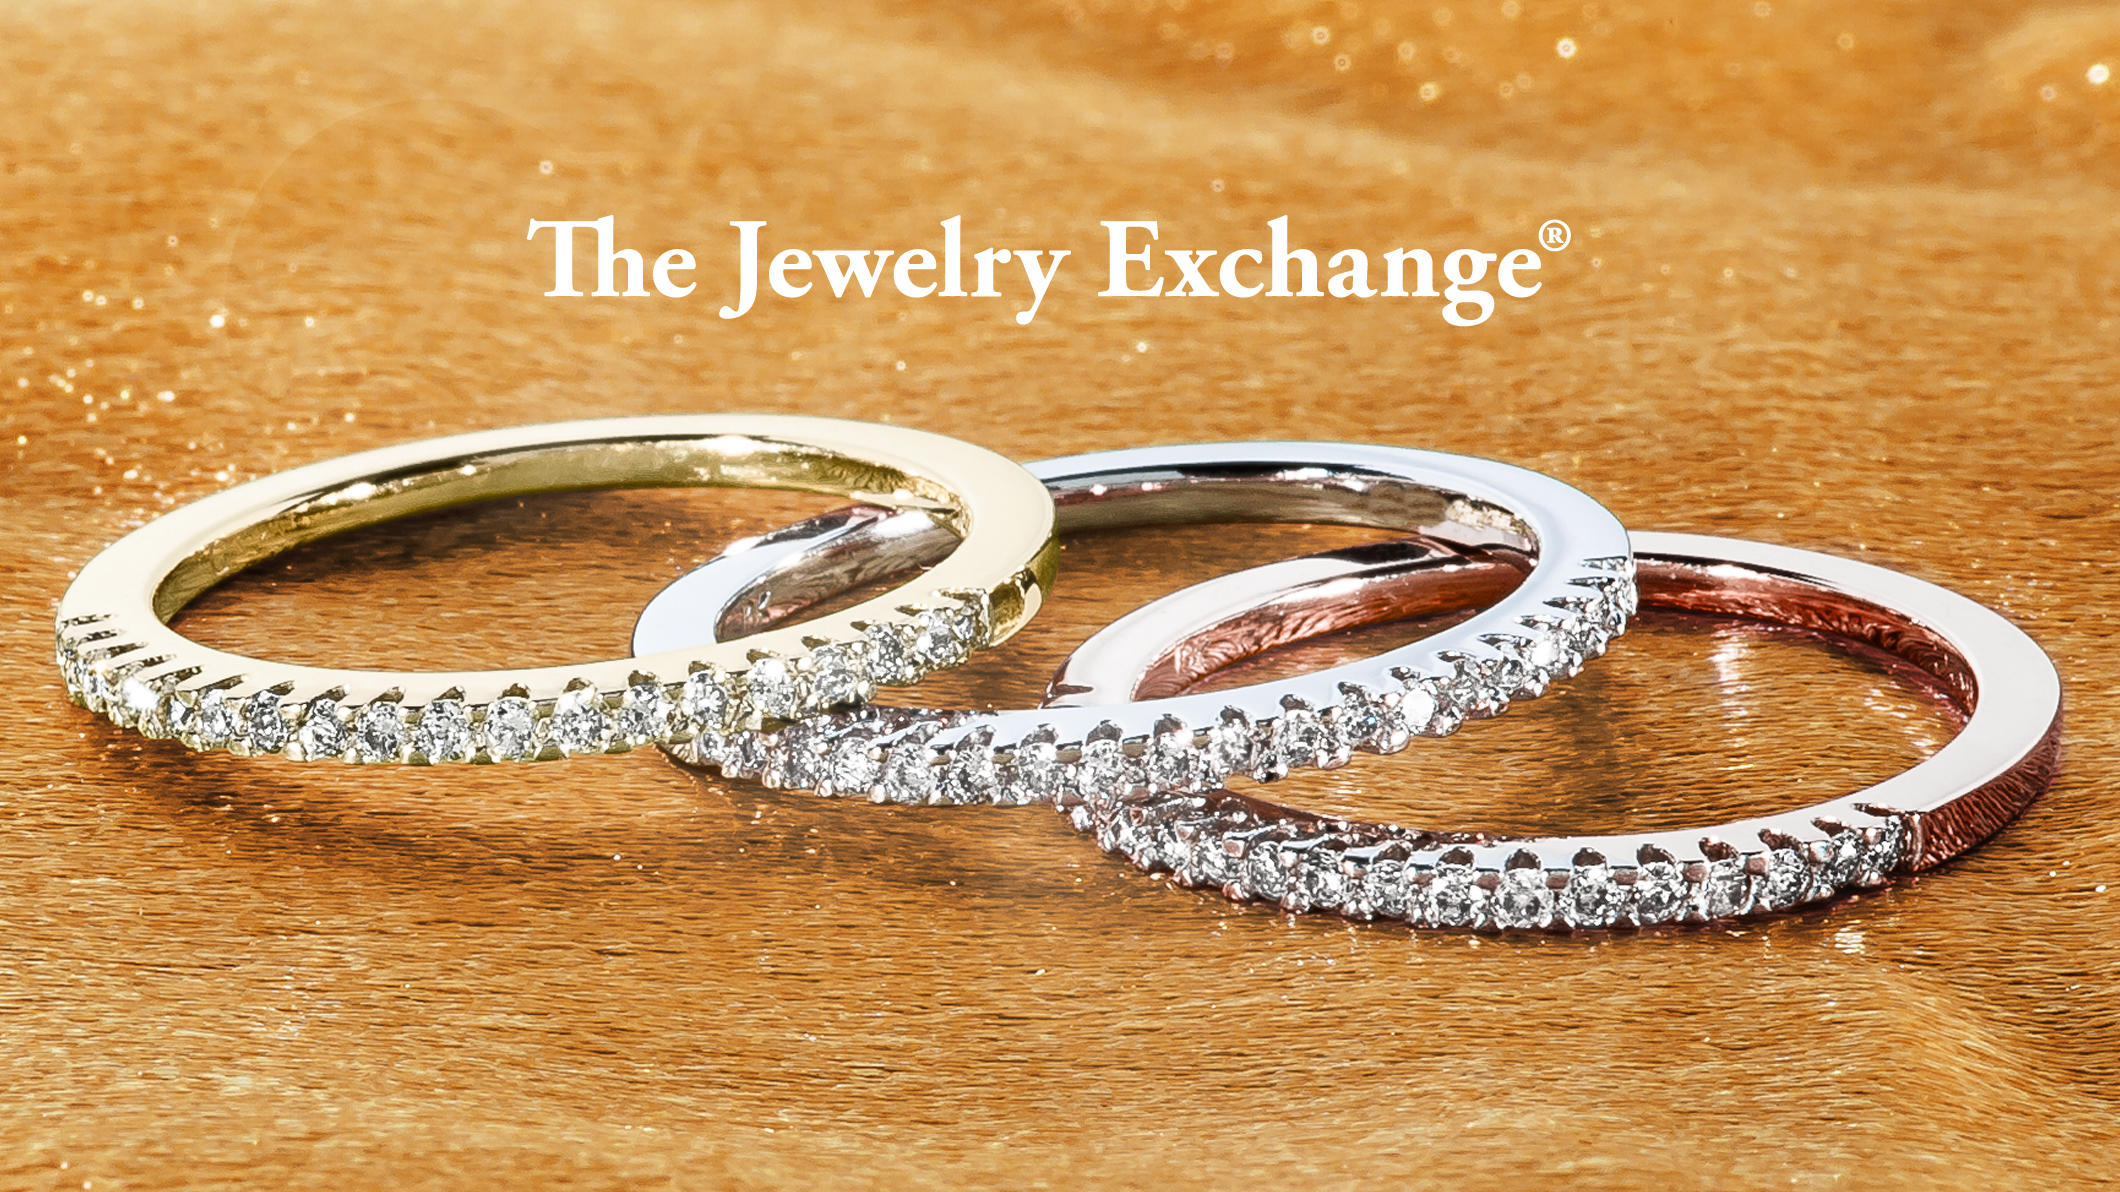 The Jewelry Exchange in New Jersey | Jewelry Store | Engagement Ring Specials image 15